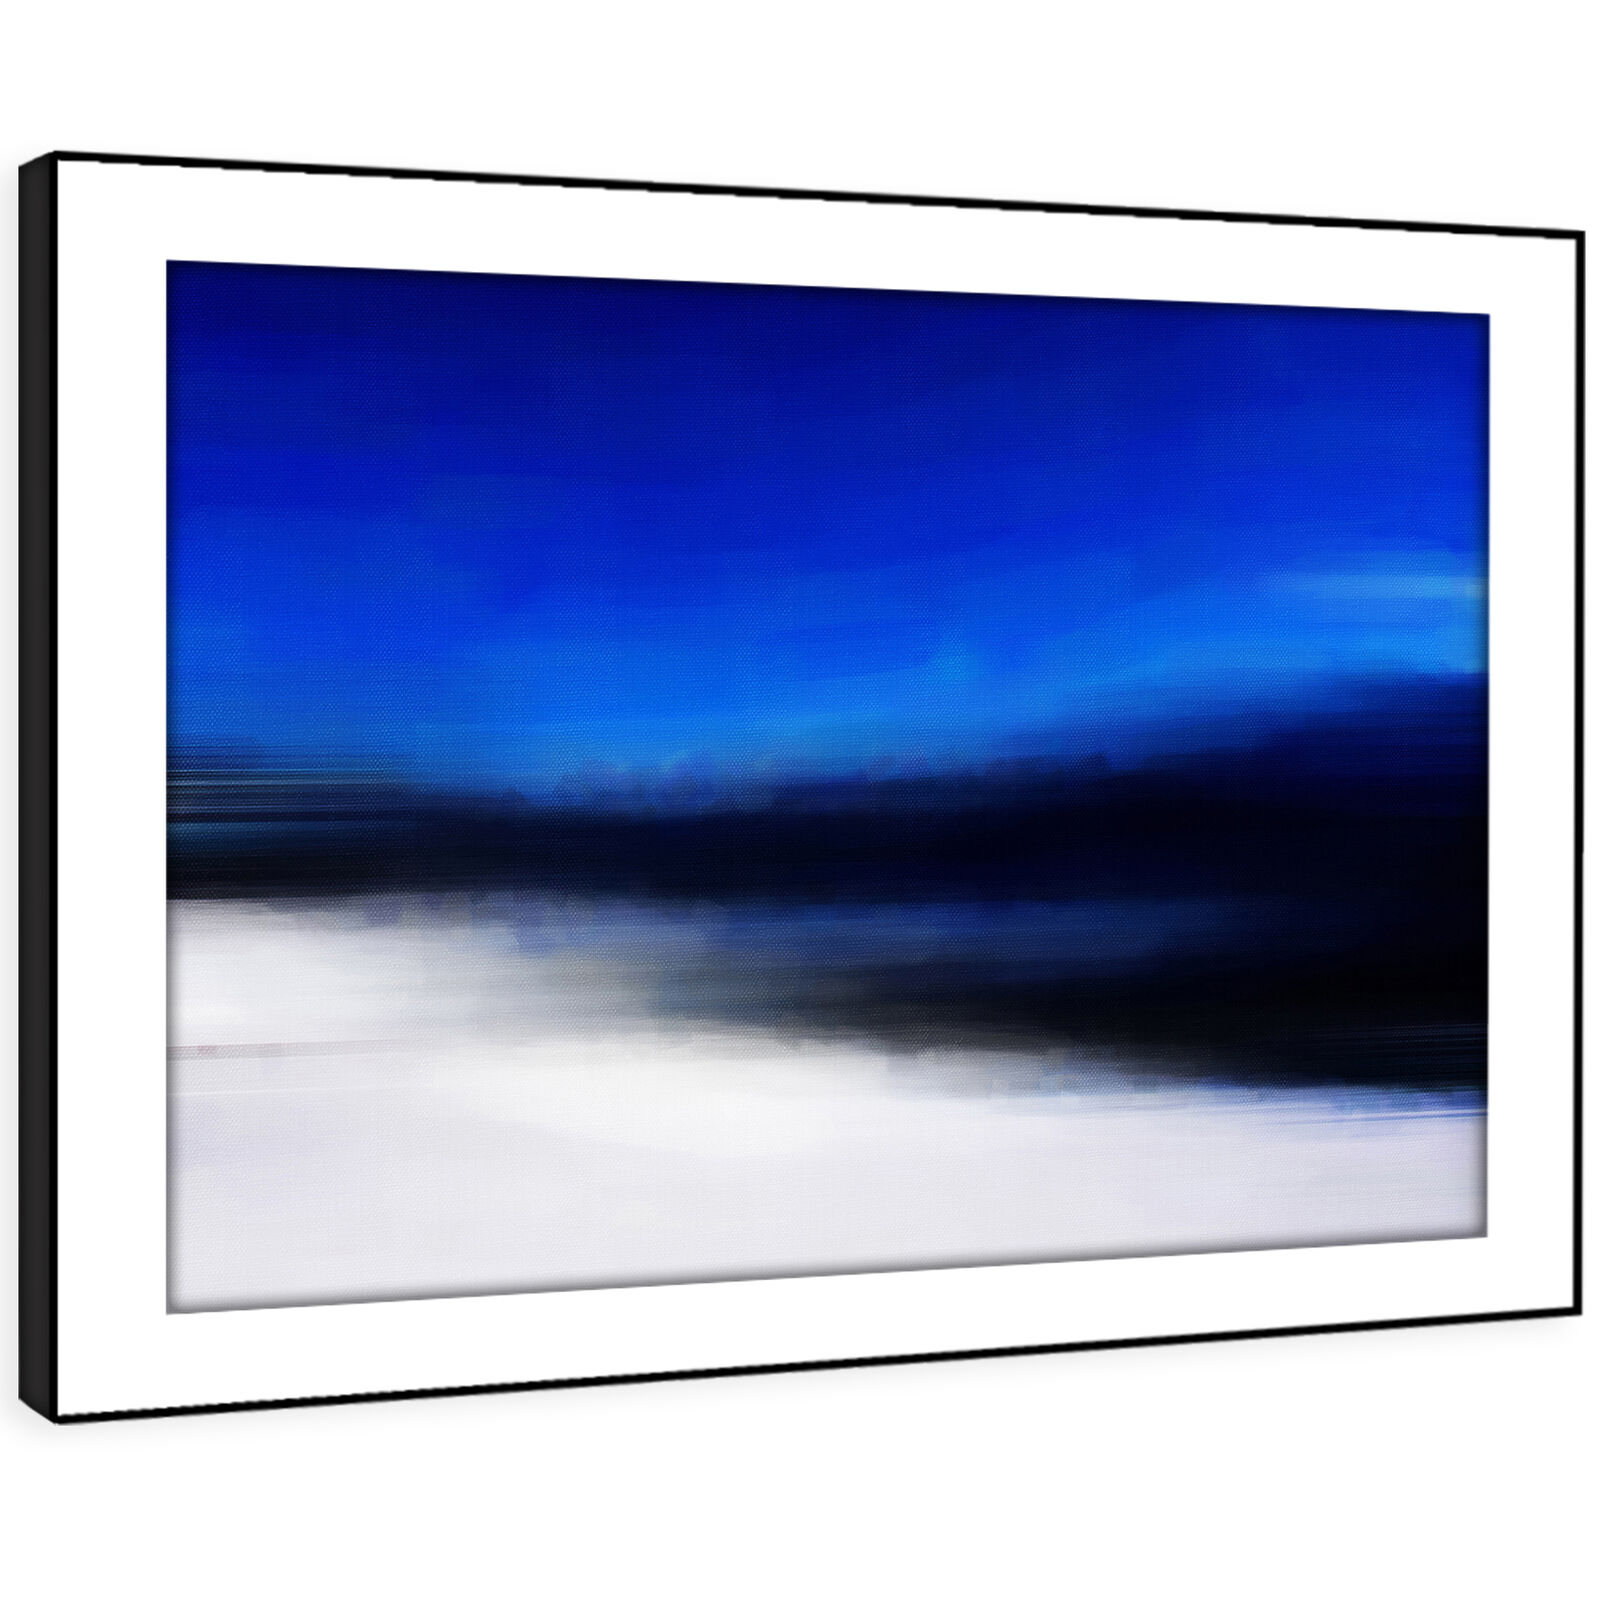 AB1143 Blau schwarz Weiß Modern Abstract Framed Wall Art Large Picture Prints